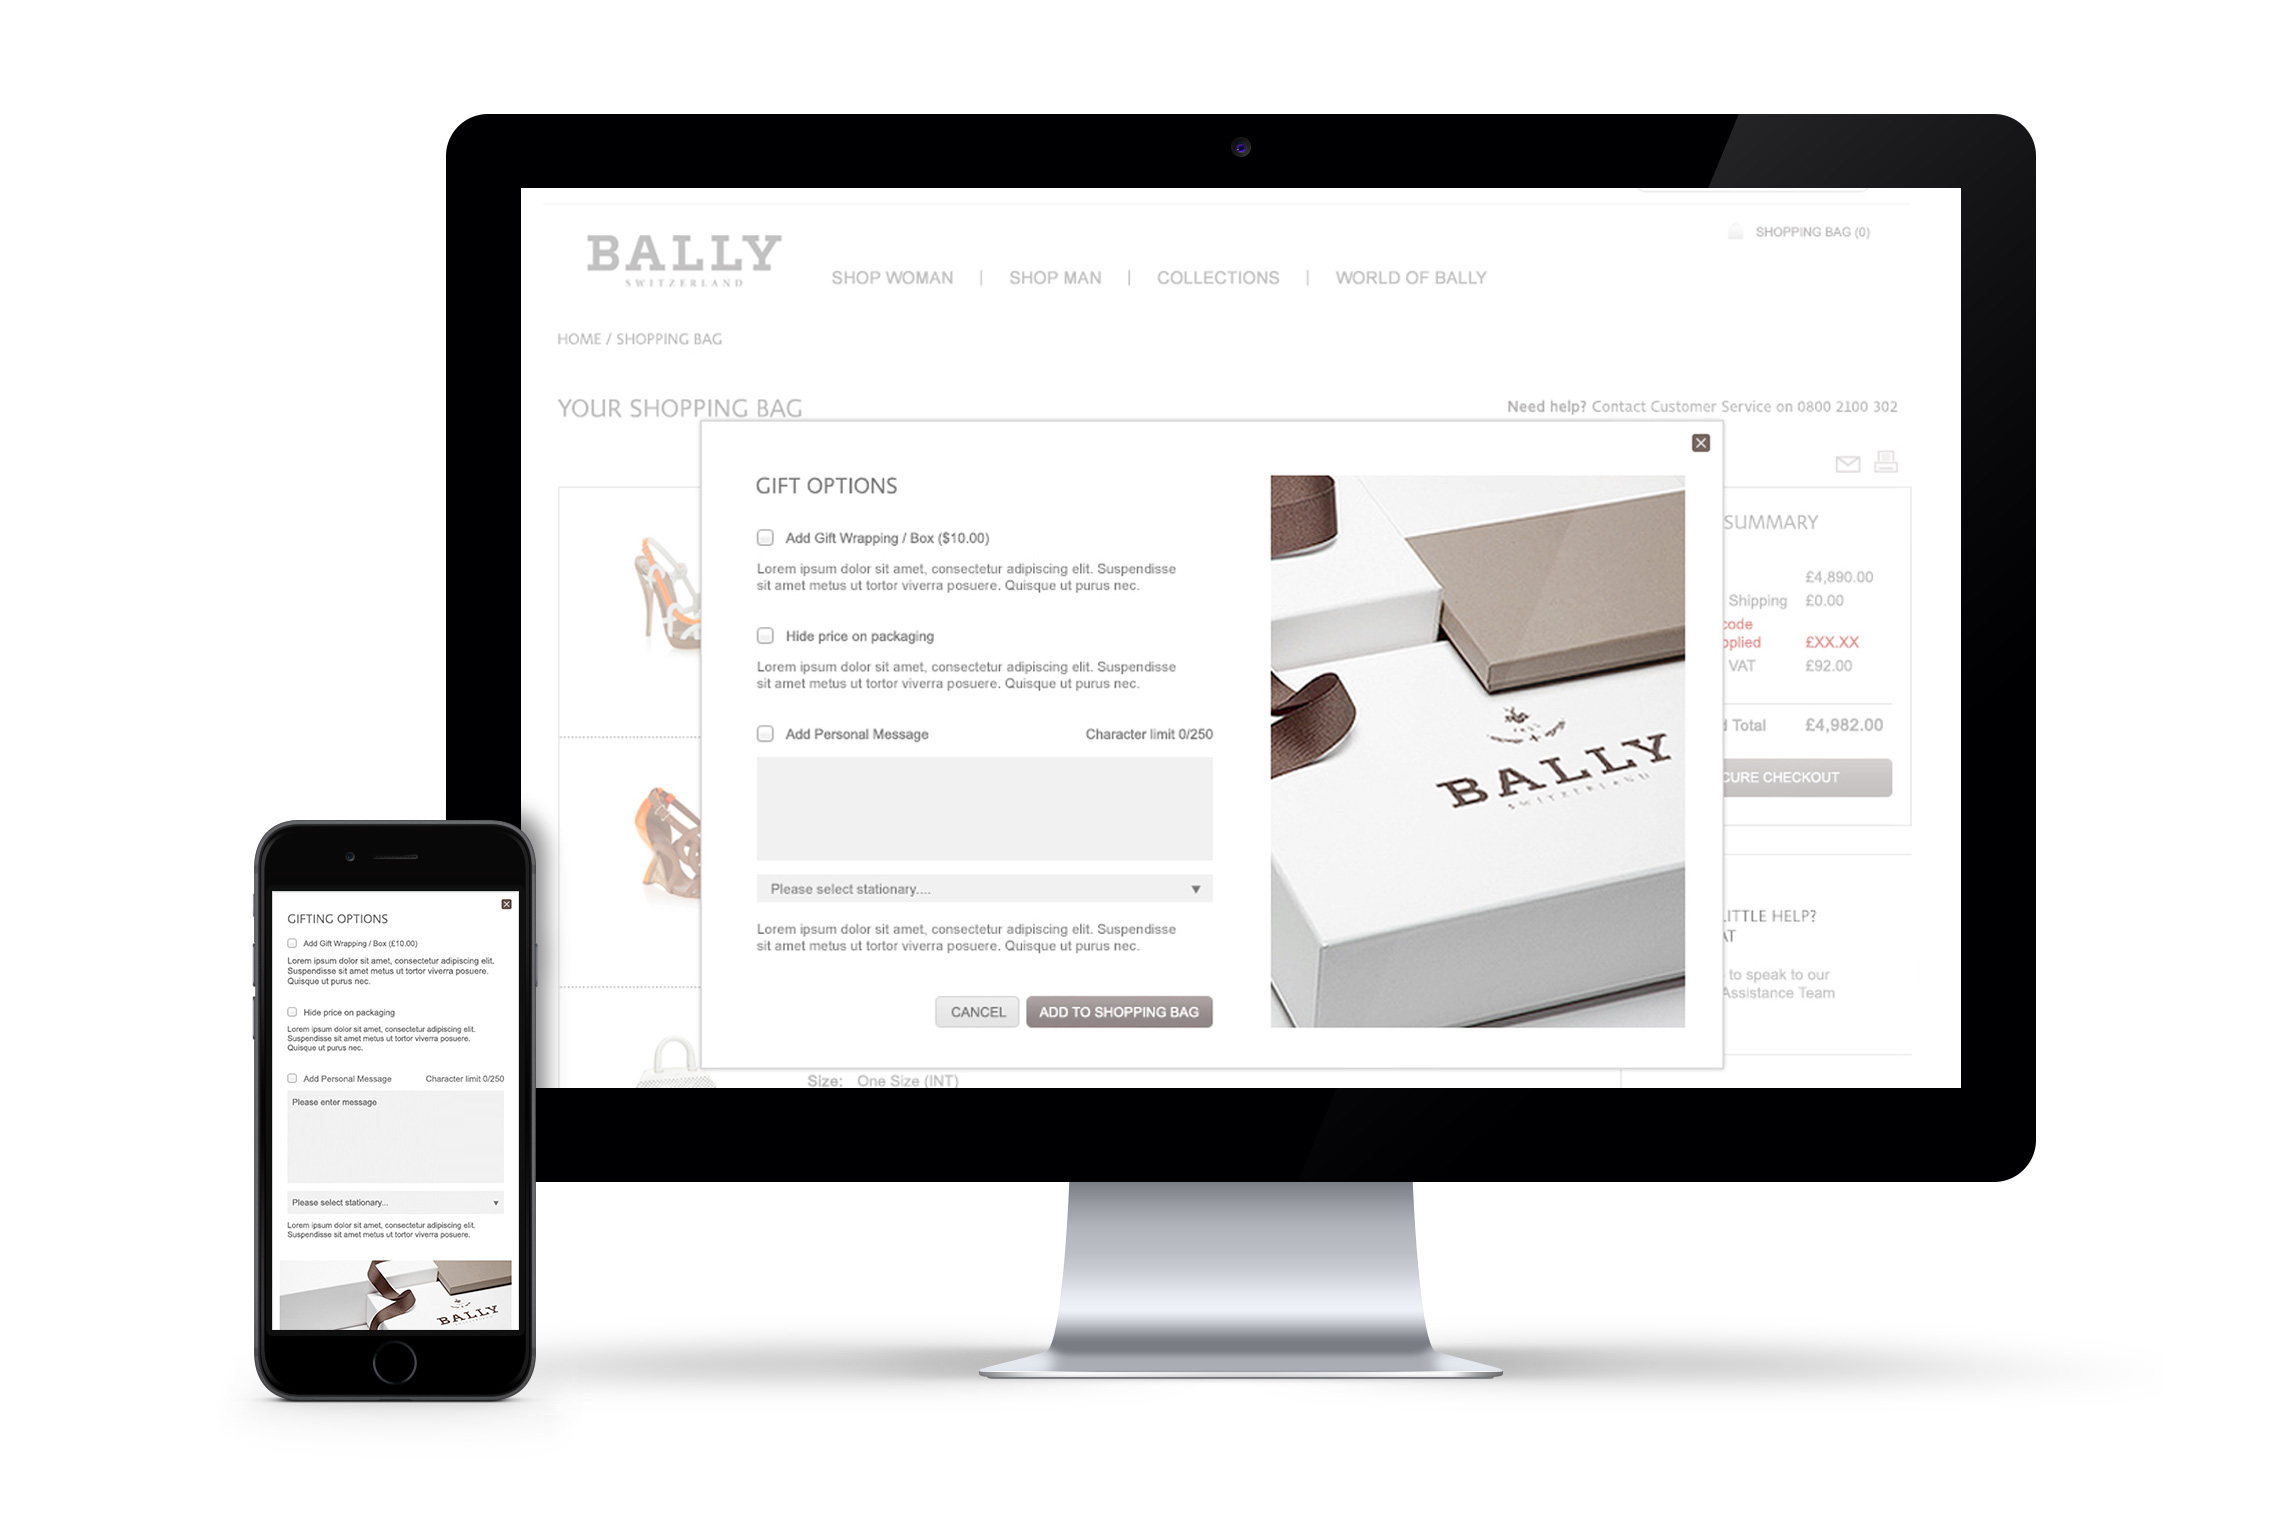 Bally_MacDevices_6.jpg